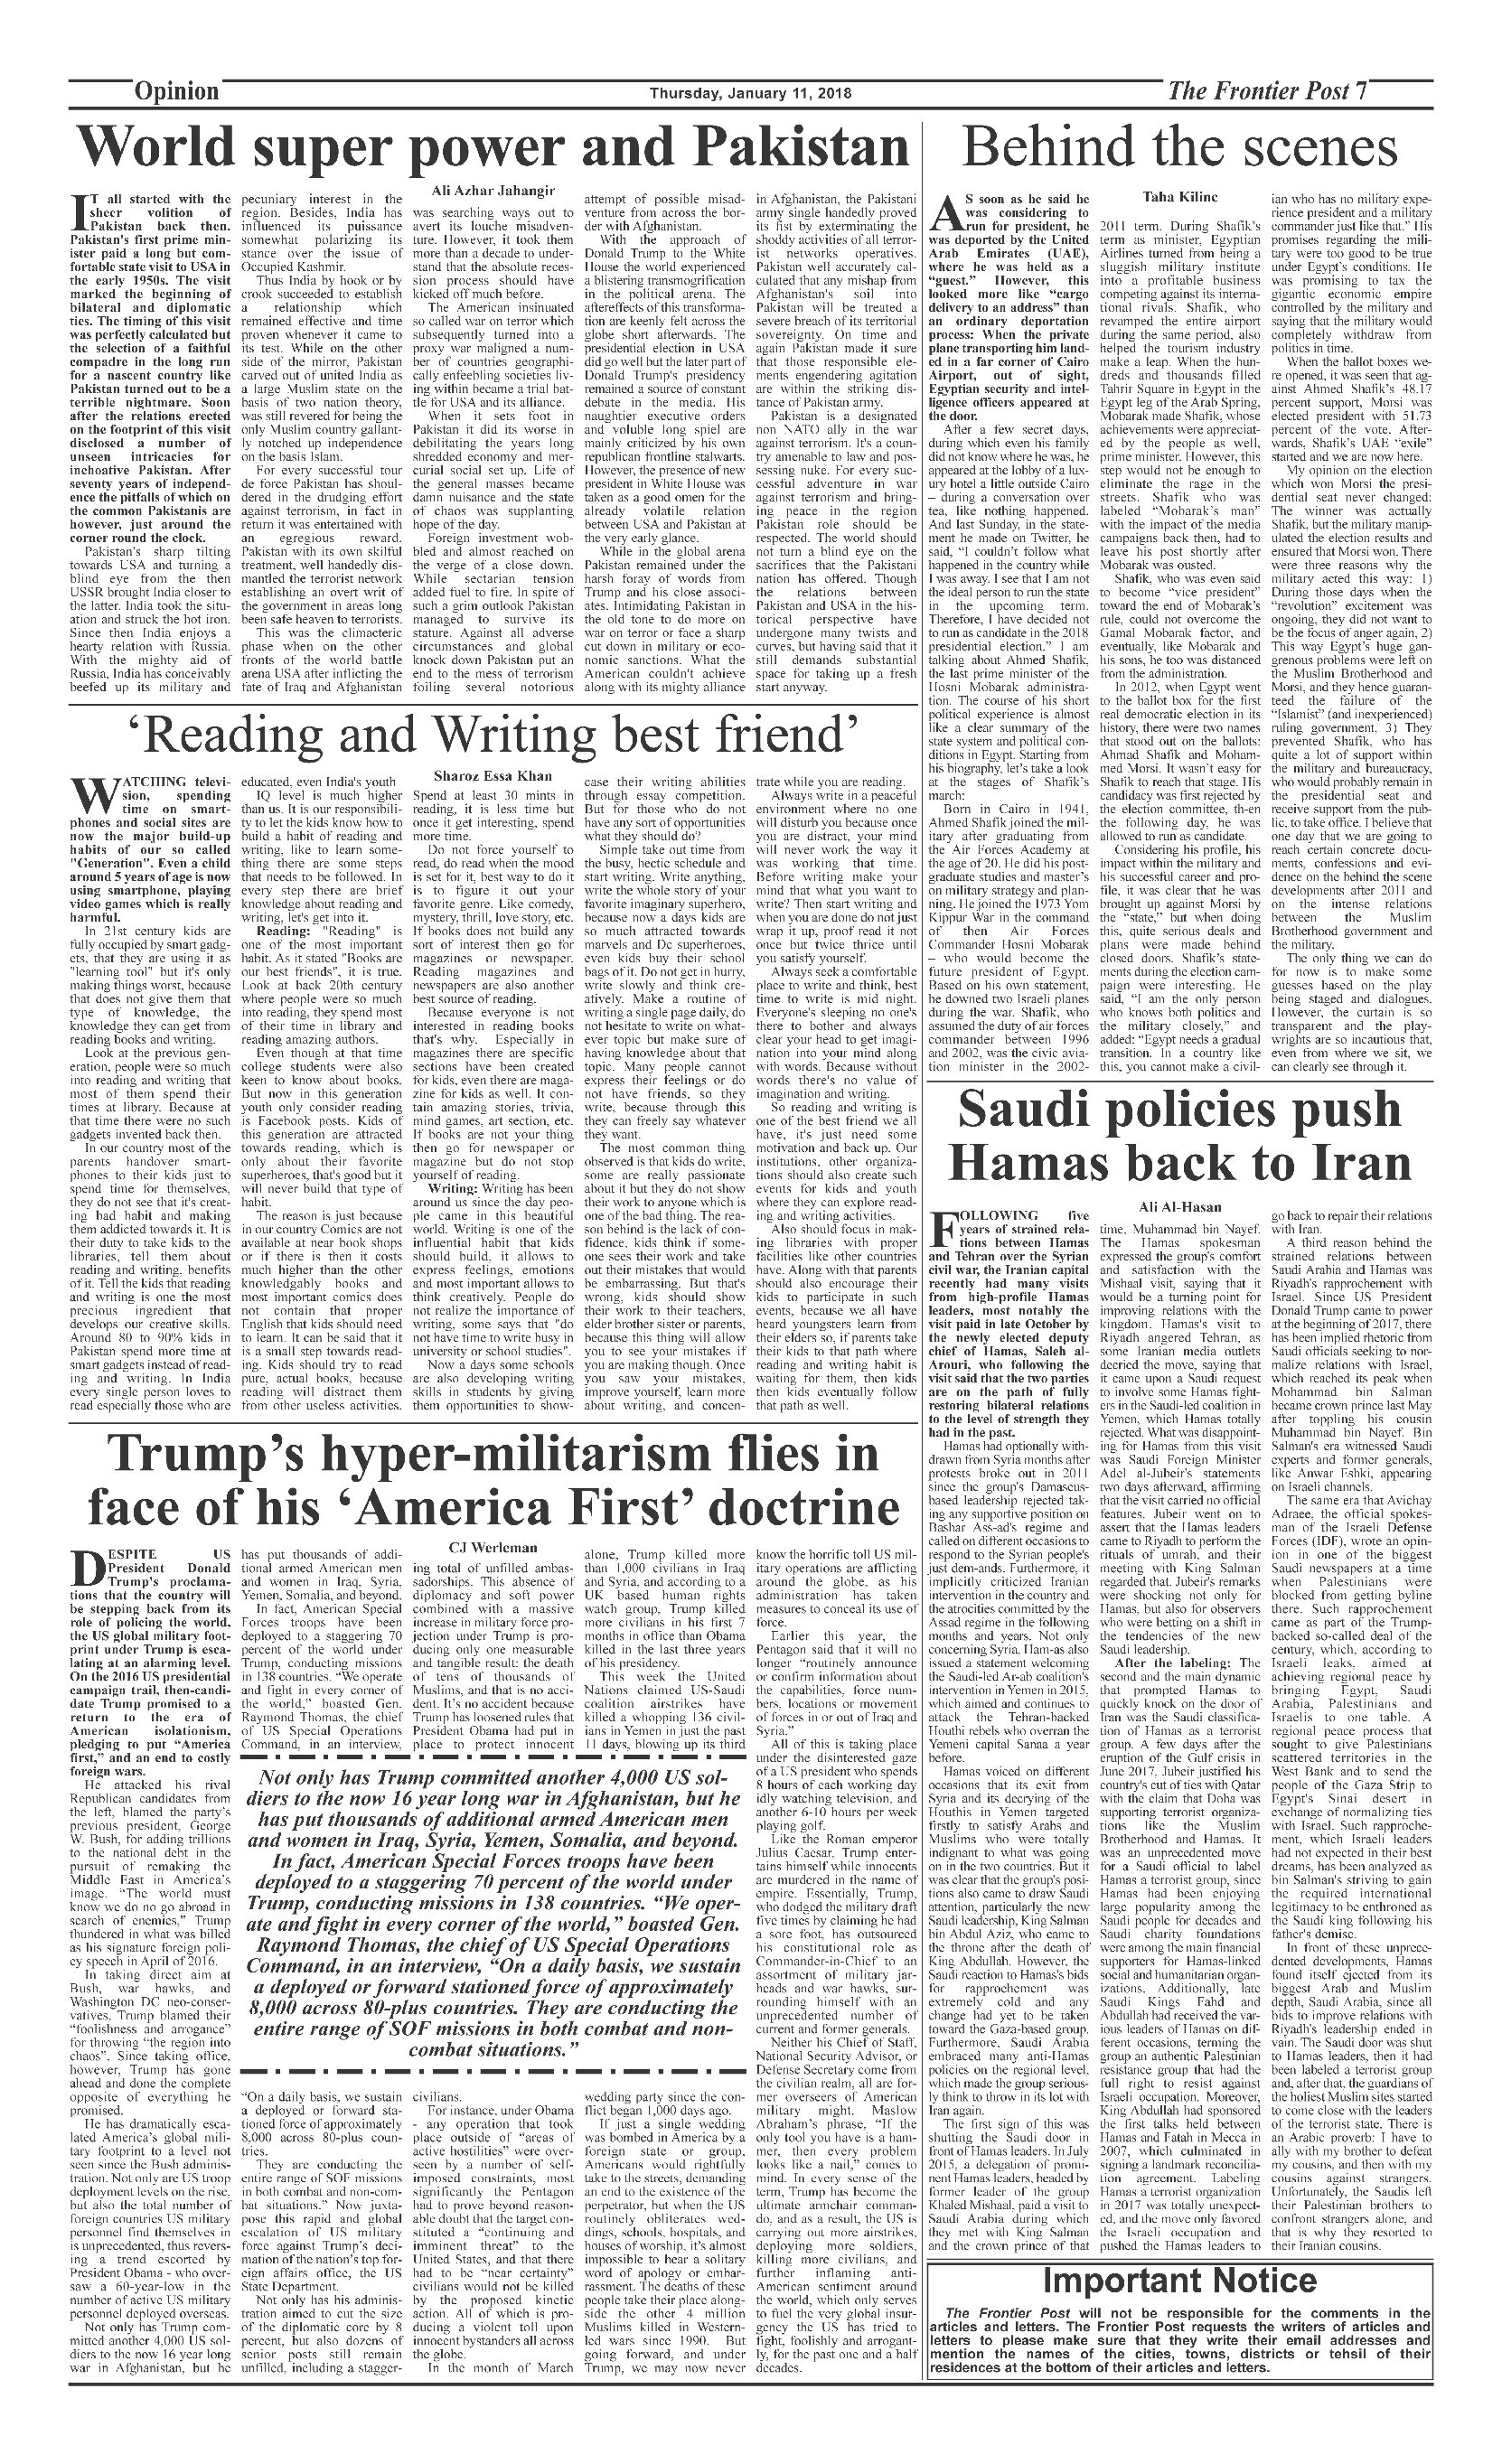 Opinion Page 11-1